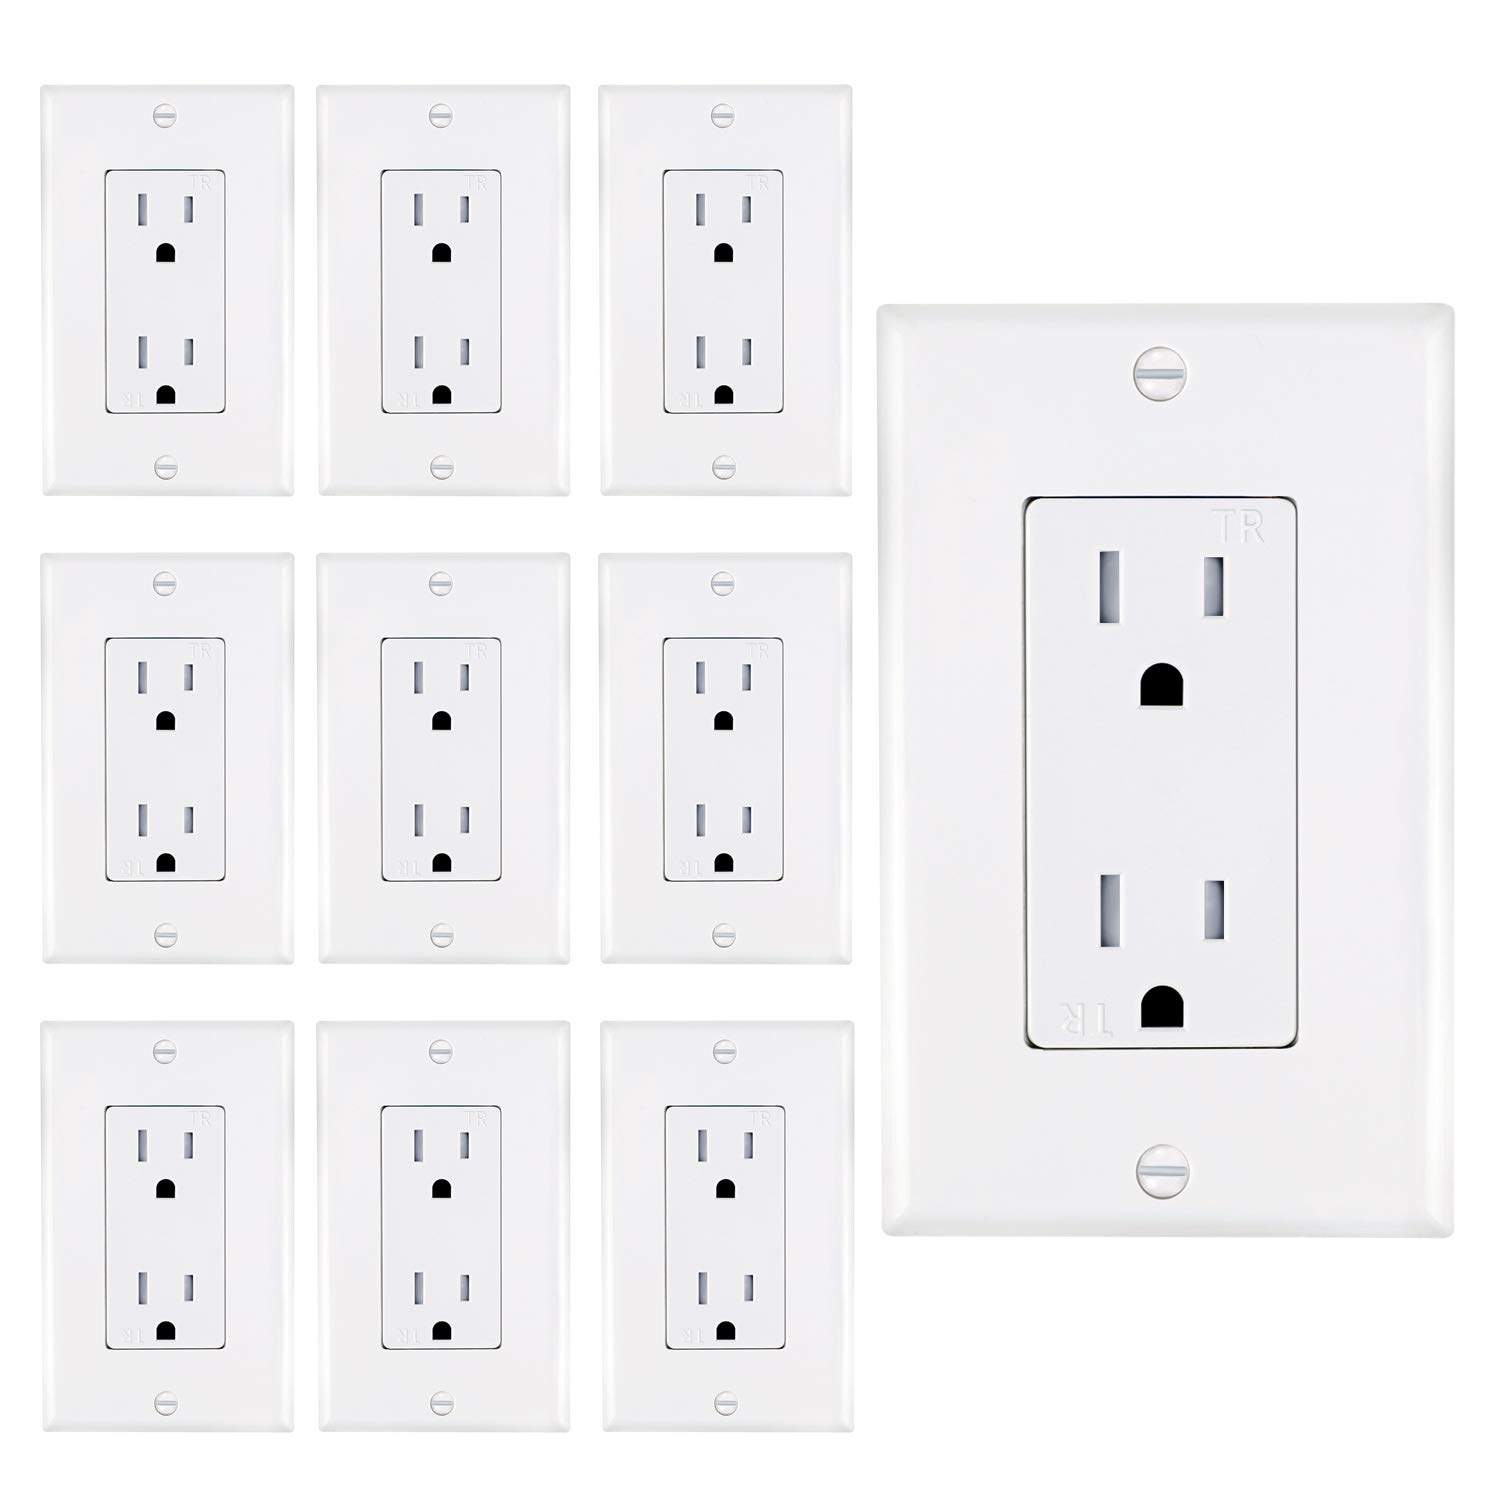 AbboTech 15A Tamper Resistant Duplex Receptacle Standard Wall Outlet Decorative Electrical Outlet, Child Proof Safety,Wall Plates Included, White, UL listed.